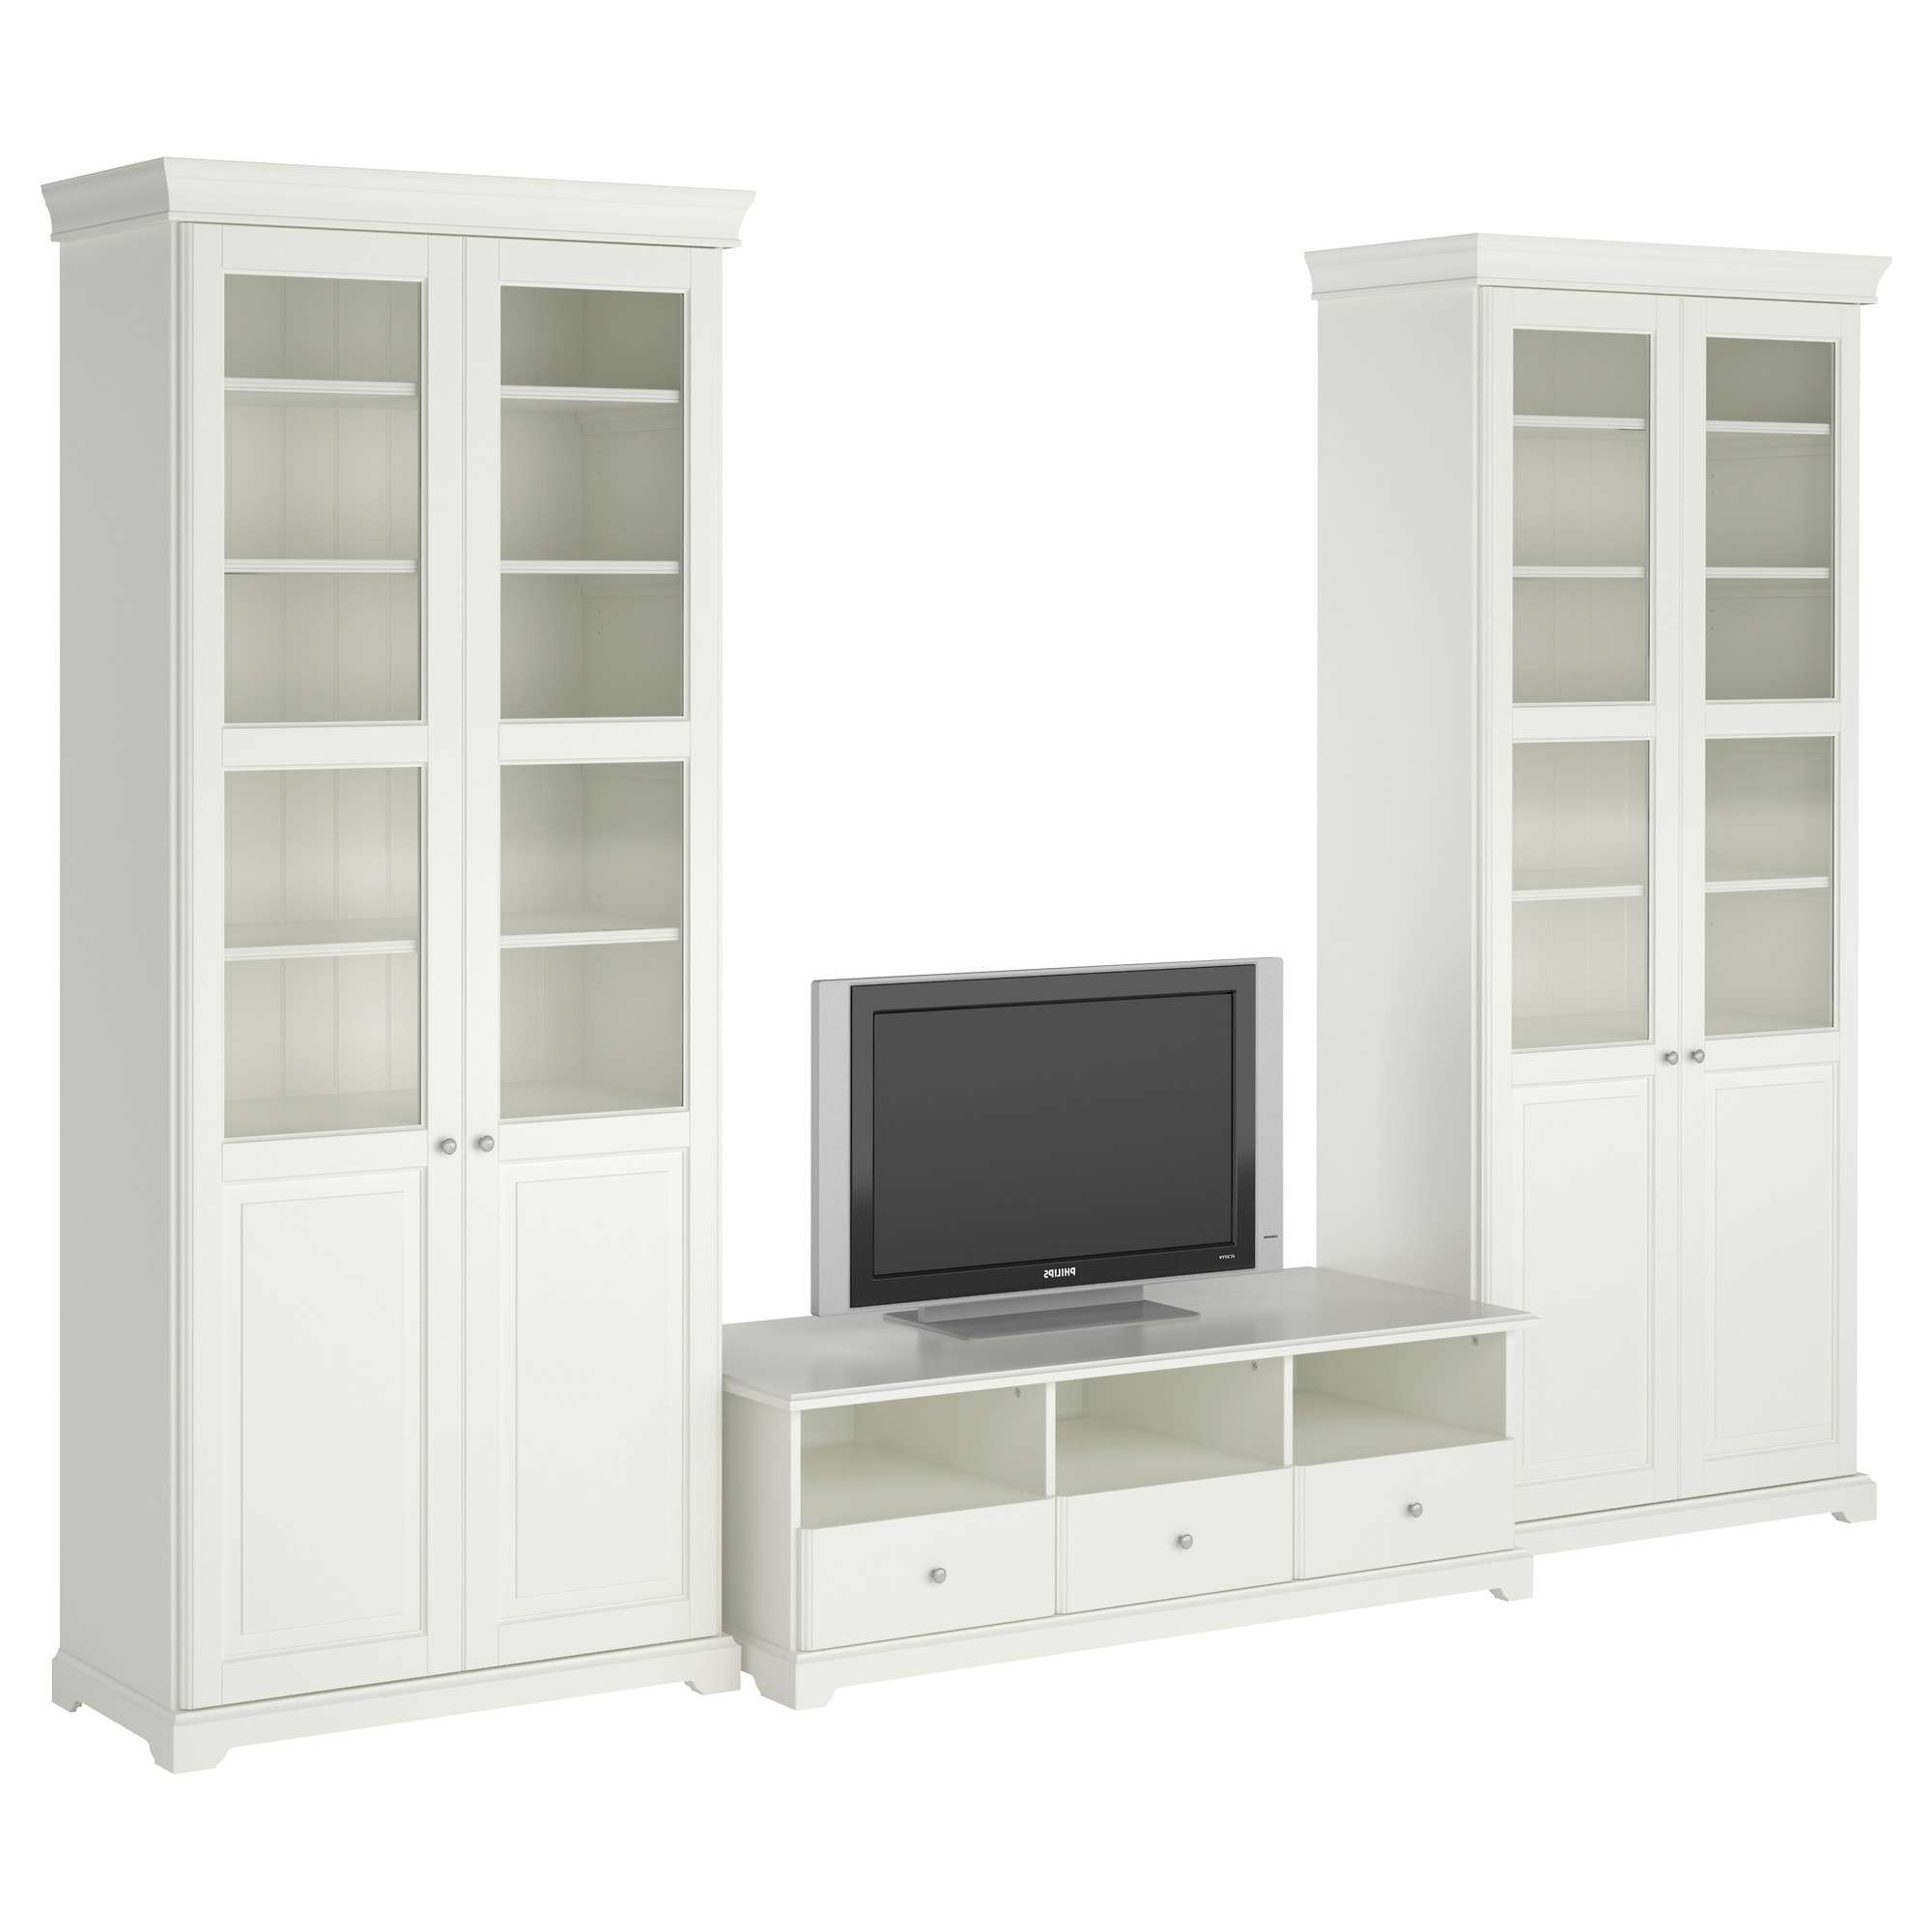 Besta Media Storage Tv Stands Entertainment Centers Ikea Liatorp Inside White Wooden Tv Stands (View 3 of 20)